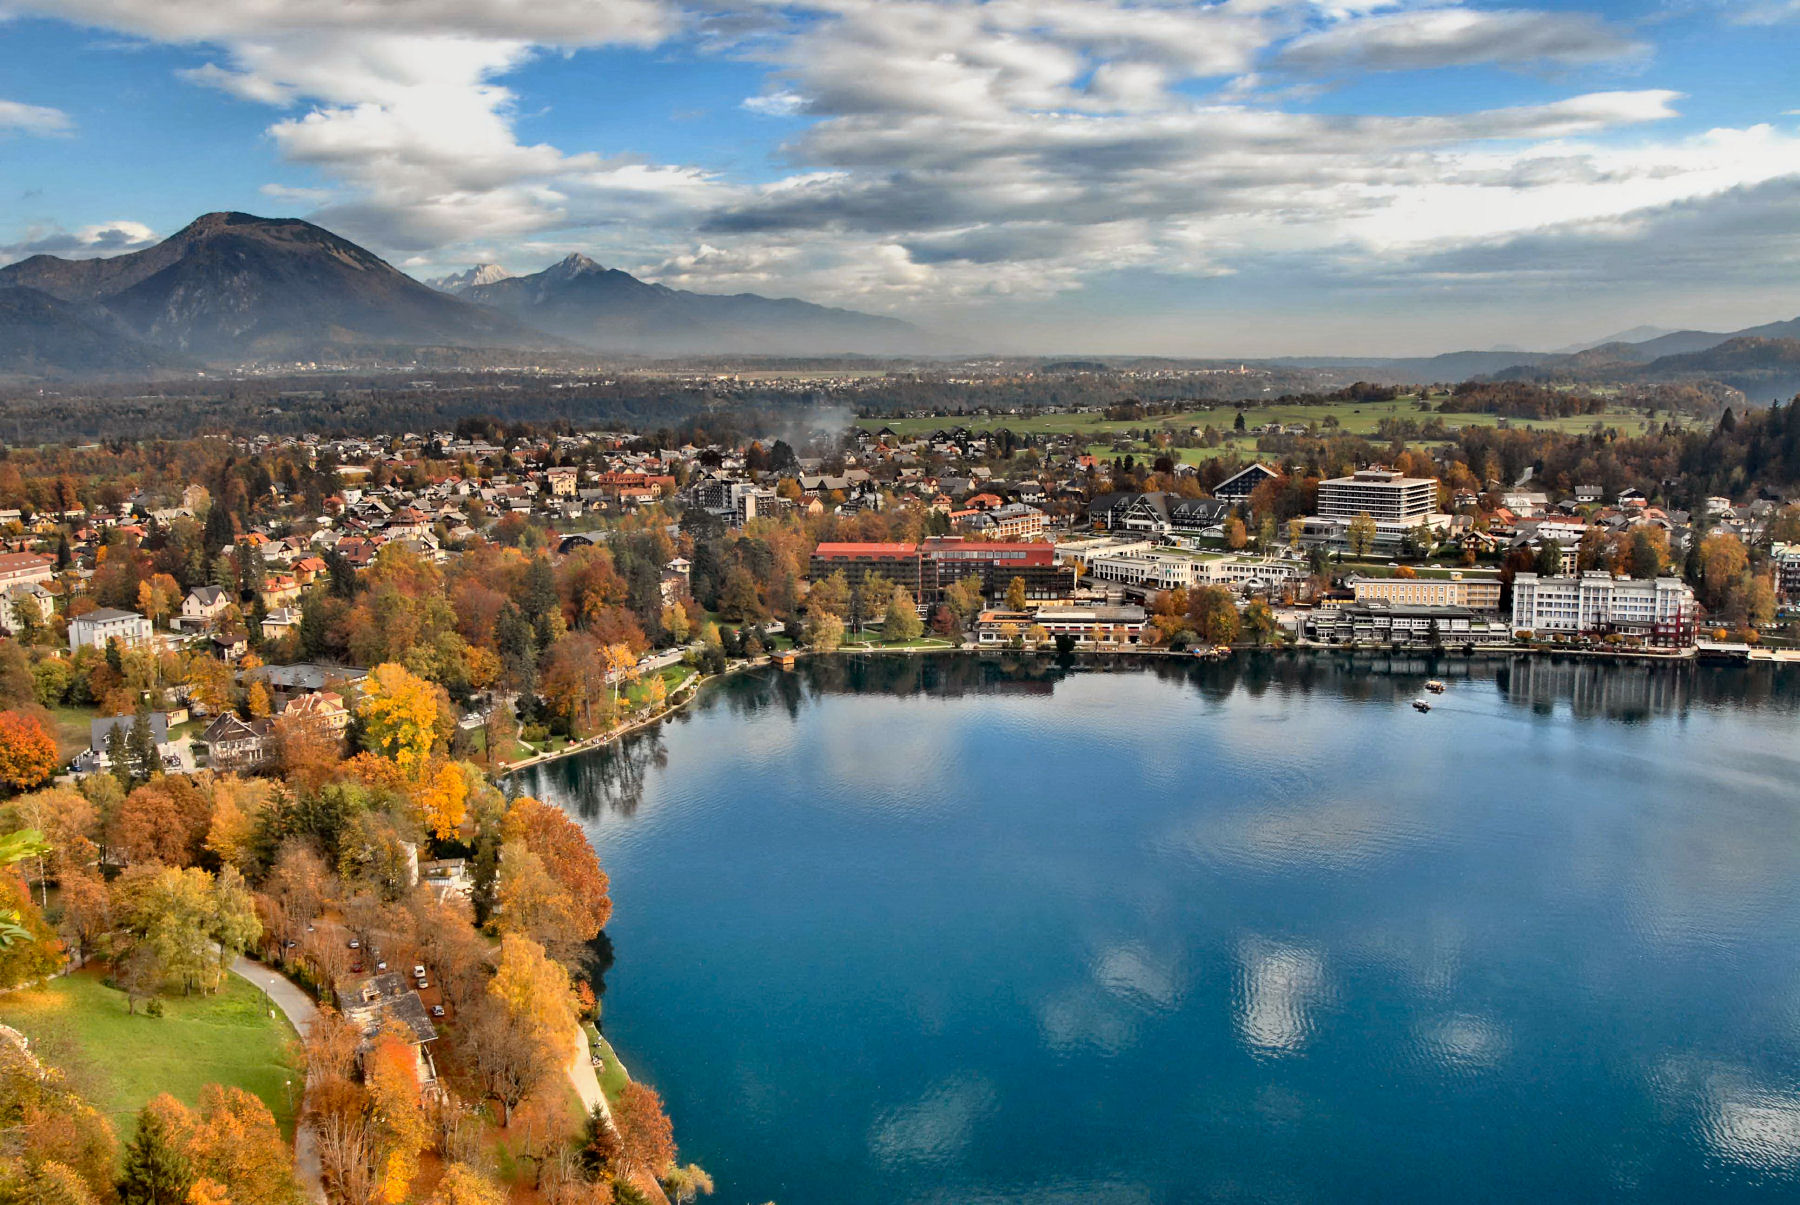 The town of Bled and Lake Bled from the Bled Castle